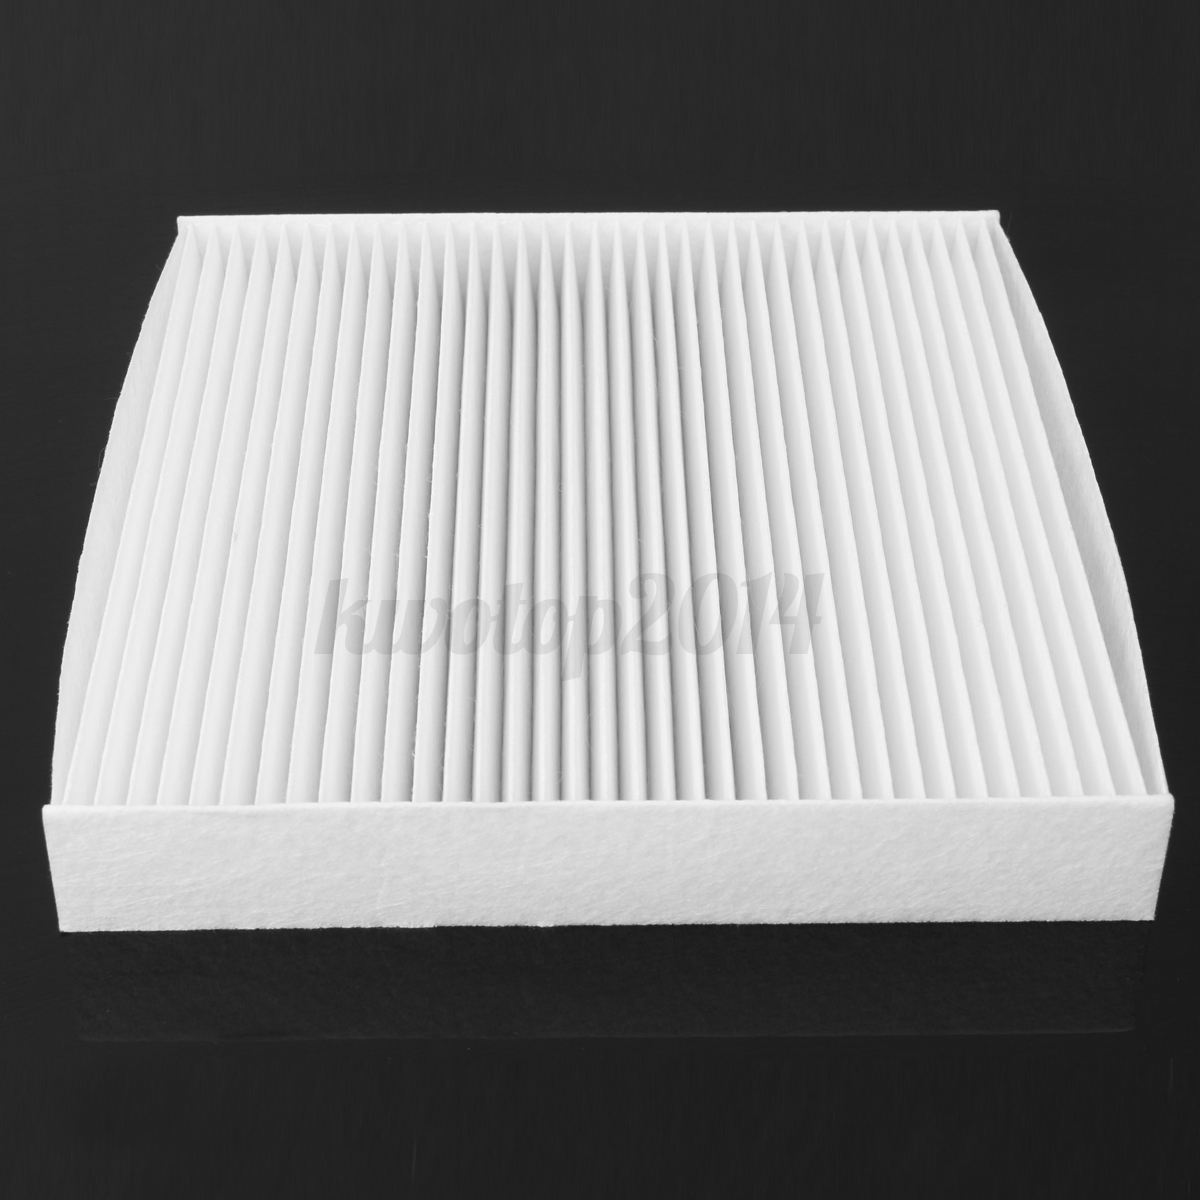 white fiber cabin air filter for toyota camry rav4 2006. Black Bedroom Furniture Sets. Home Design Ideas